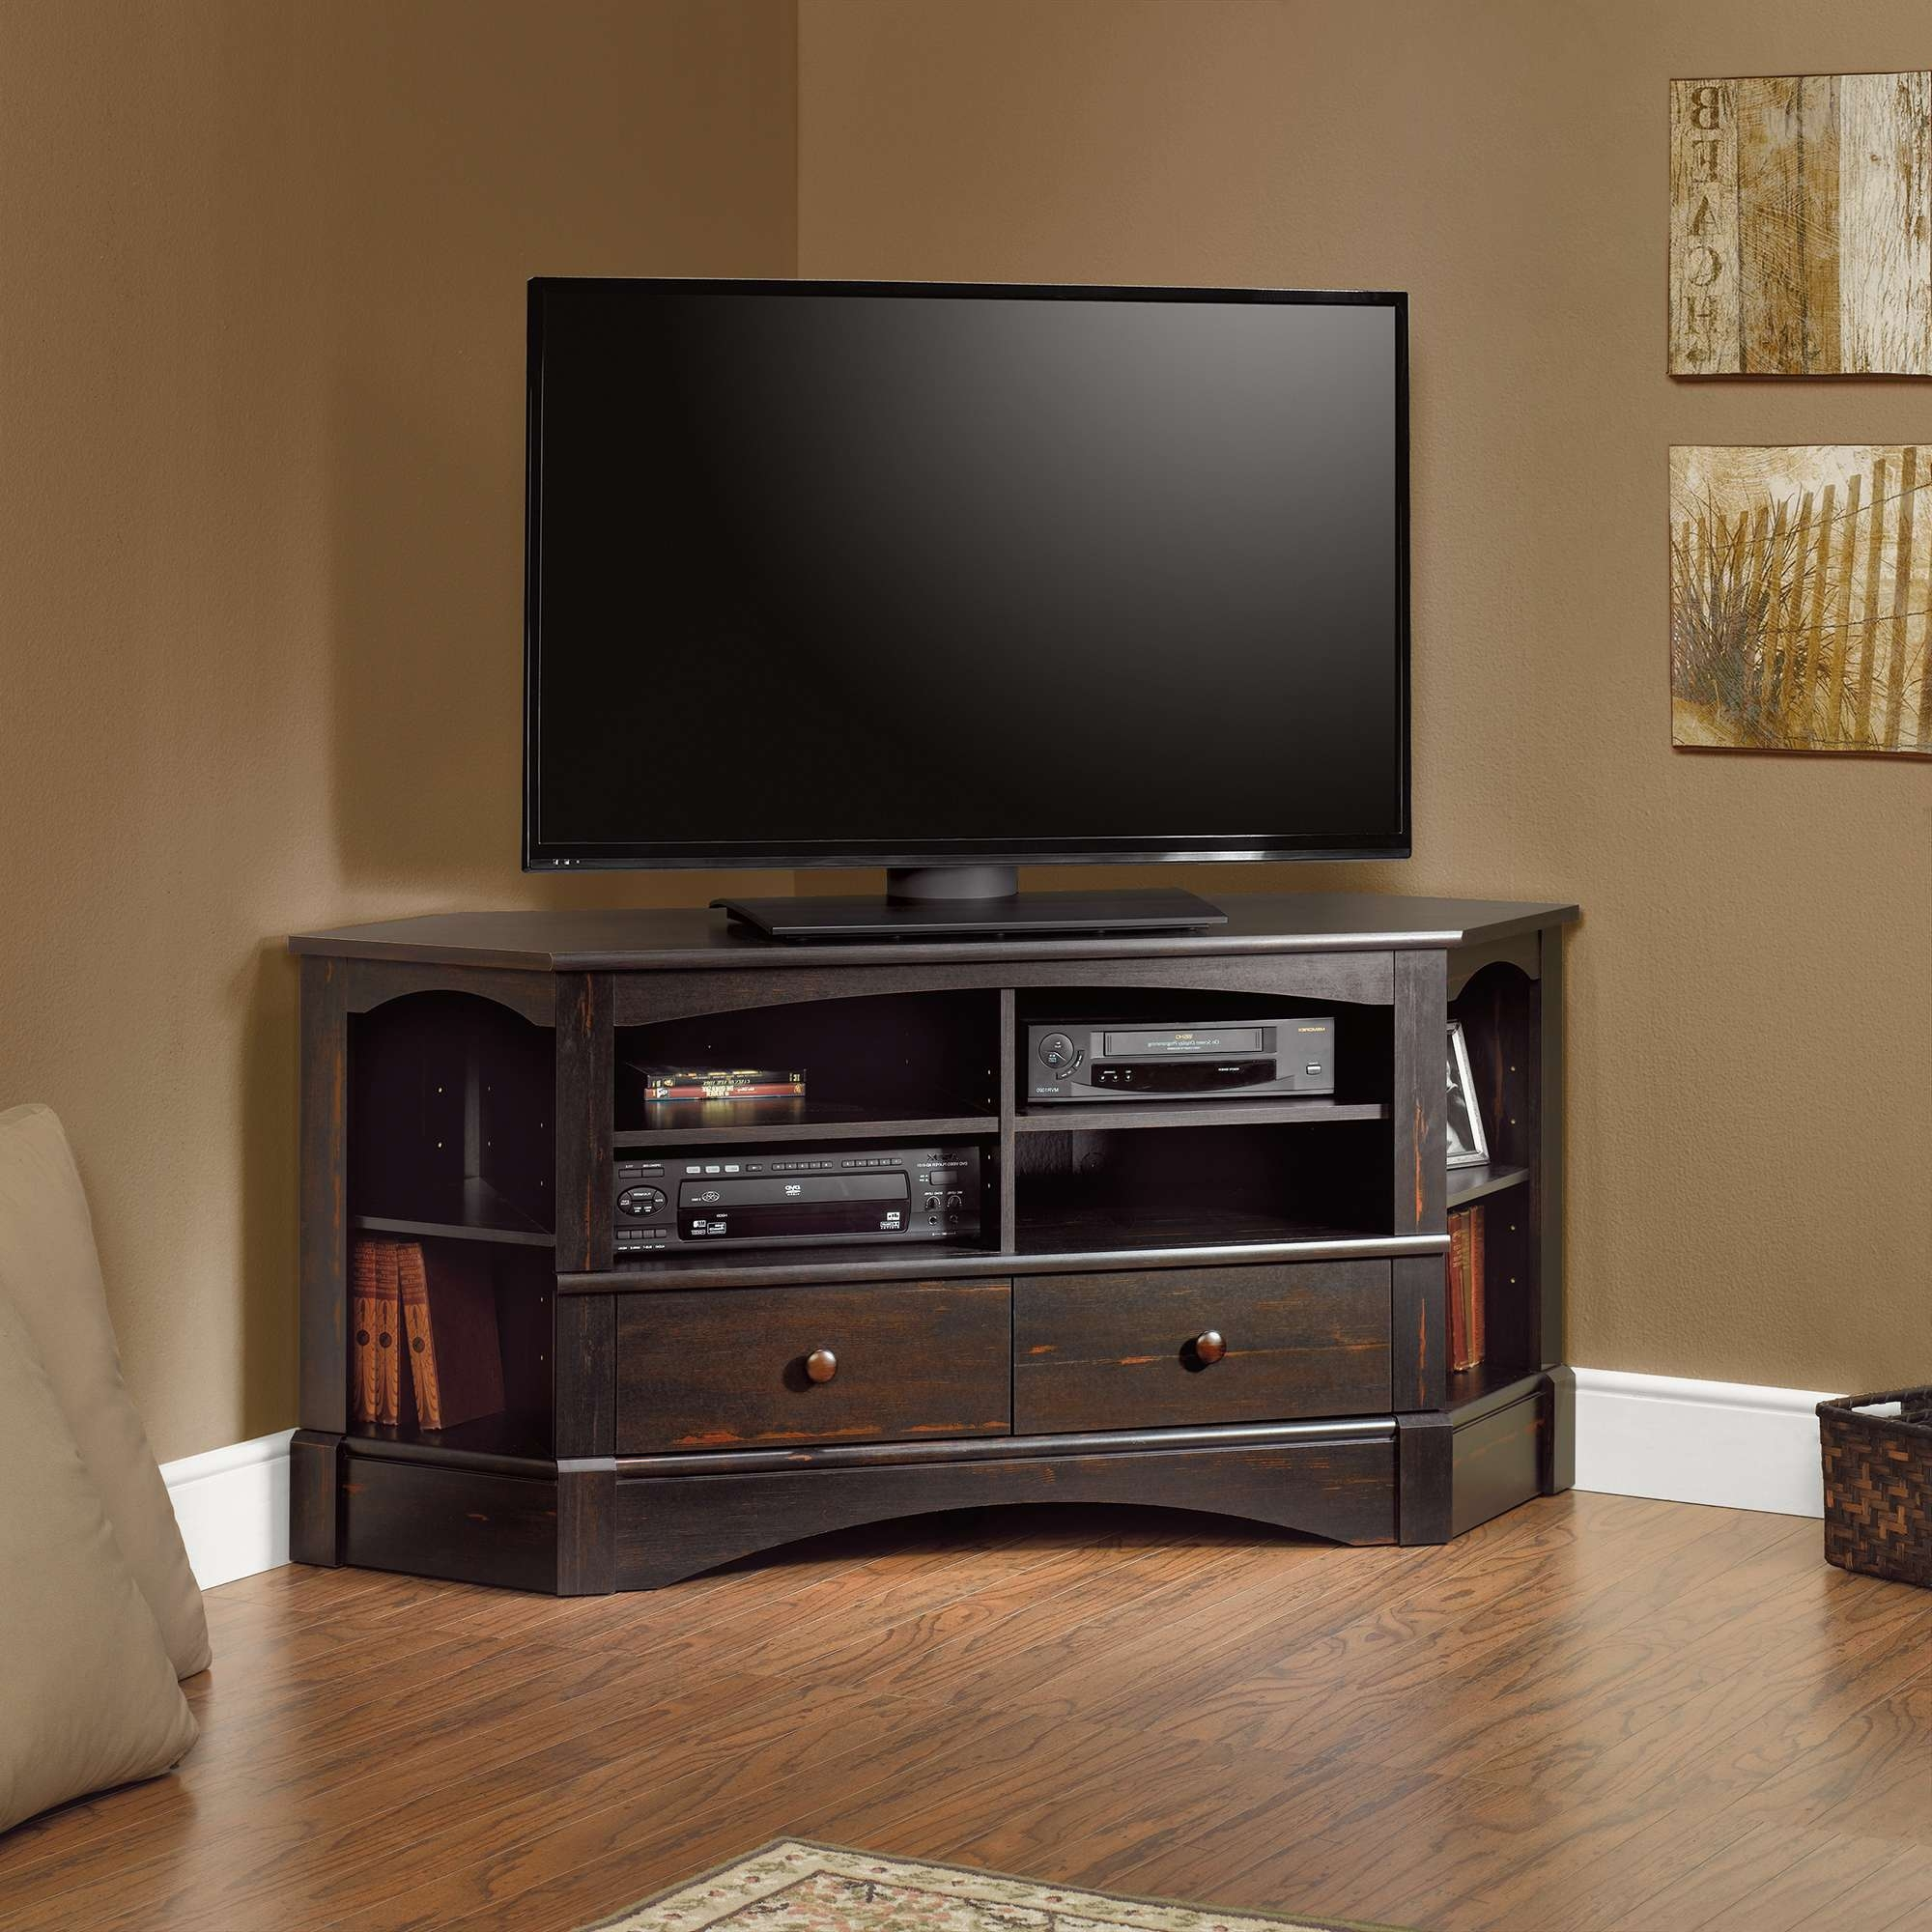 Harbor View | Corner Entertainment Credenza | 402902 | Sauder Pertaining To Real Wood Corner Tv Stands (View 7 of 15)